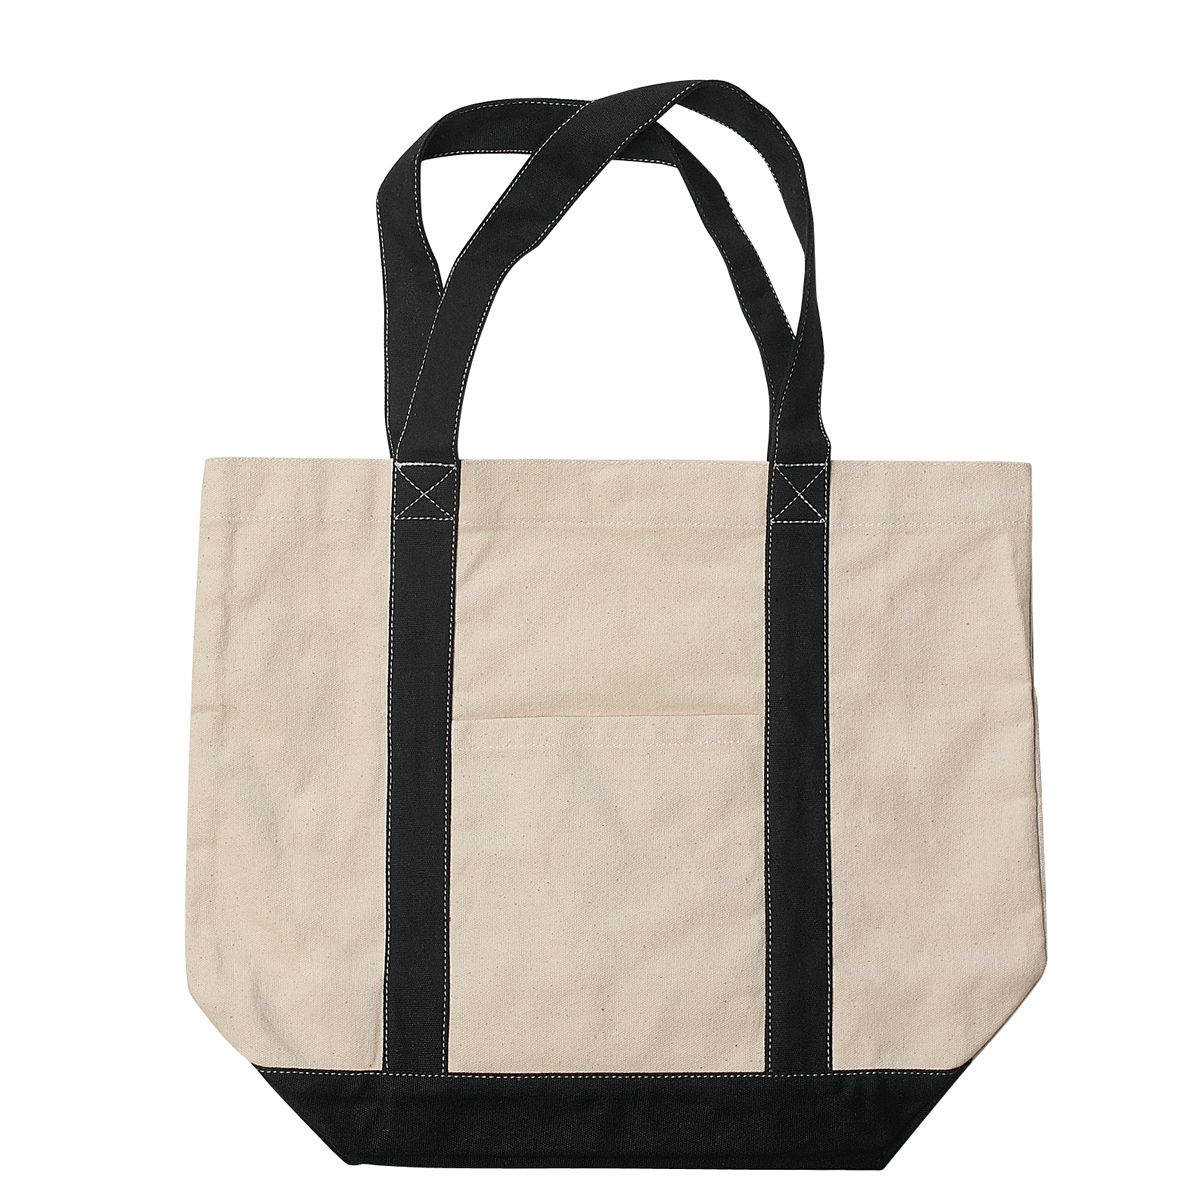 Navy Waxed Canvas Tote Bag | Bags | Pinterest | Canvases, Products ...